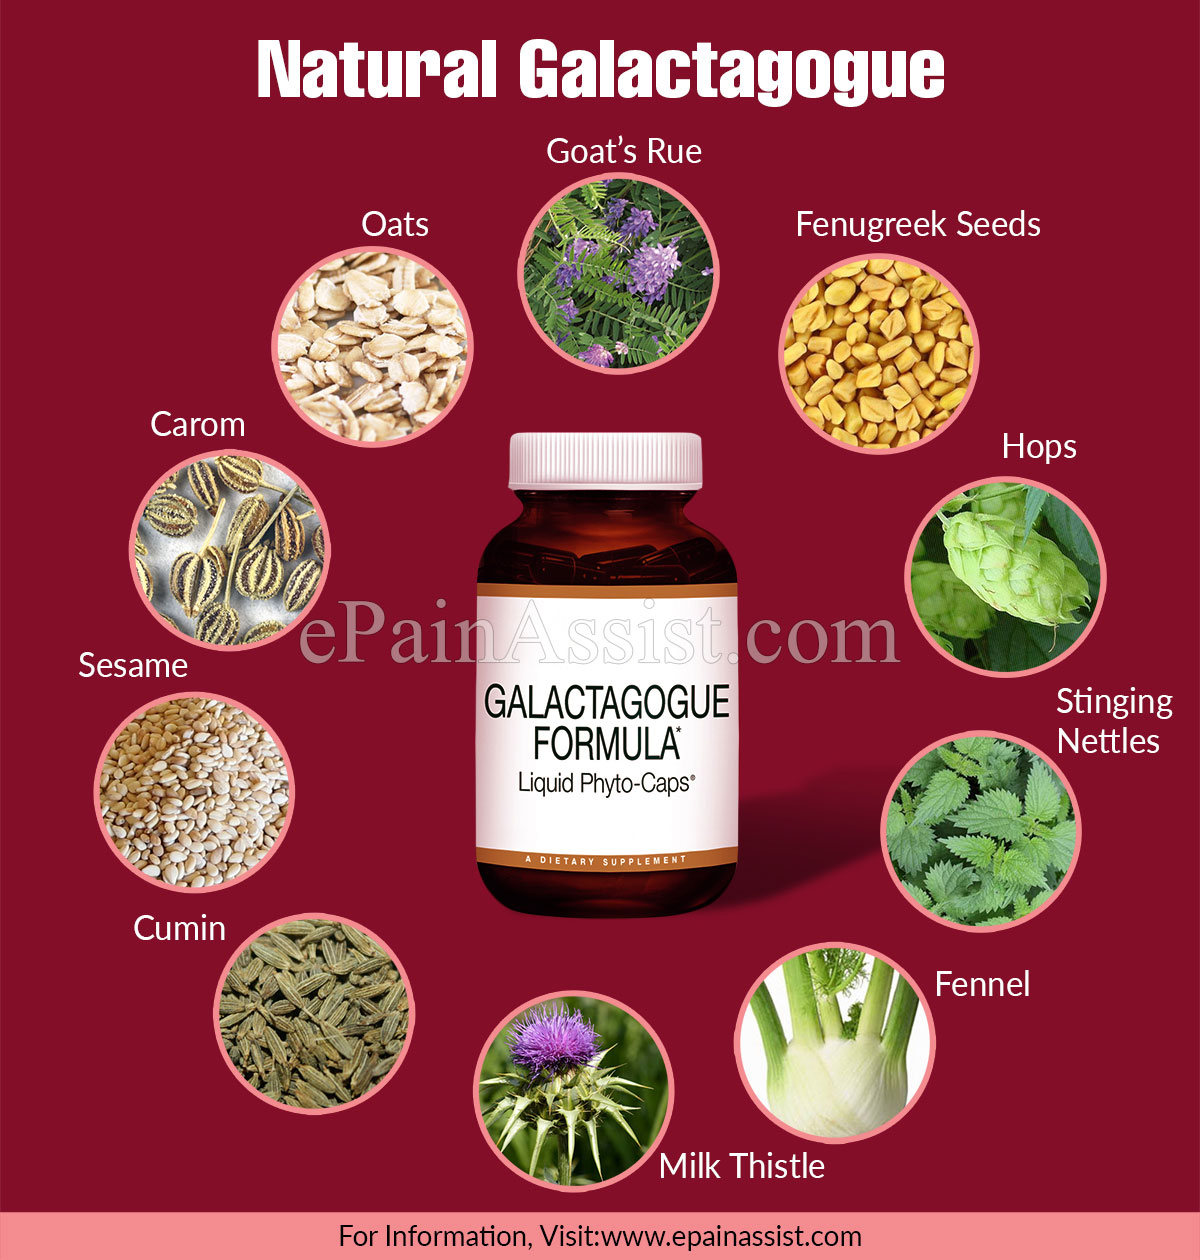 Natural Galactagogues & Their Uses